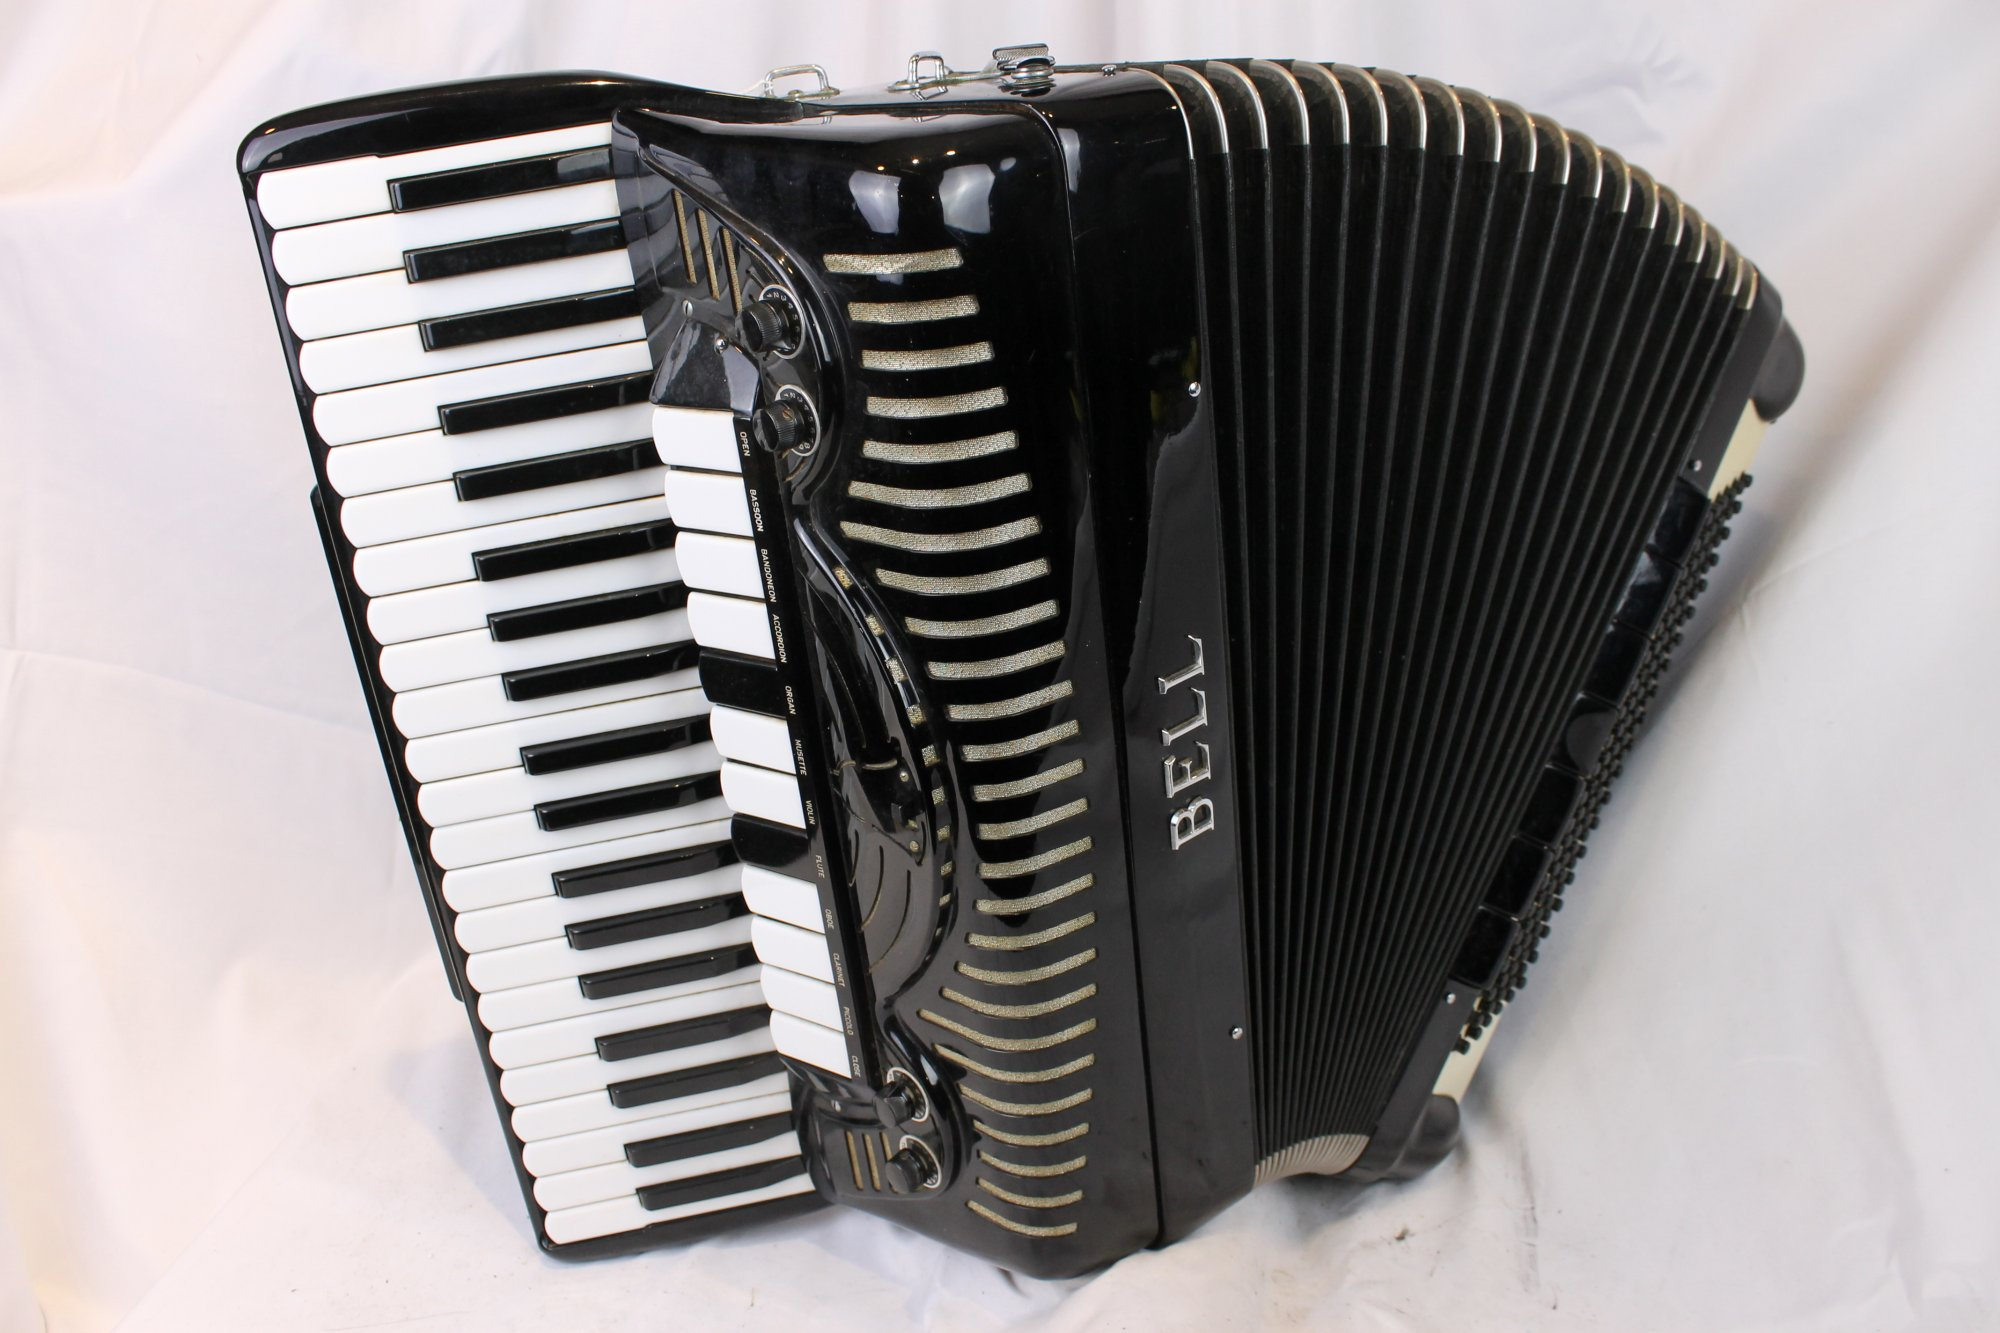 4096 - Black Bell Piano Accordion LMMH 41 120